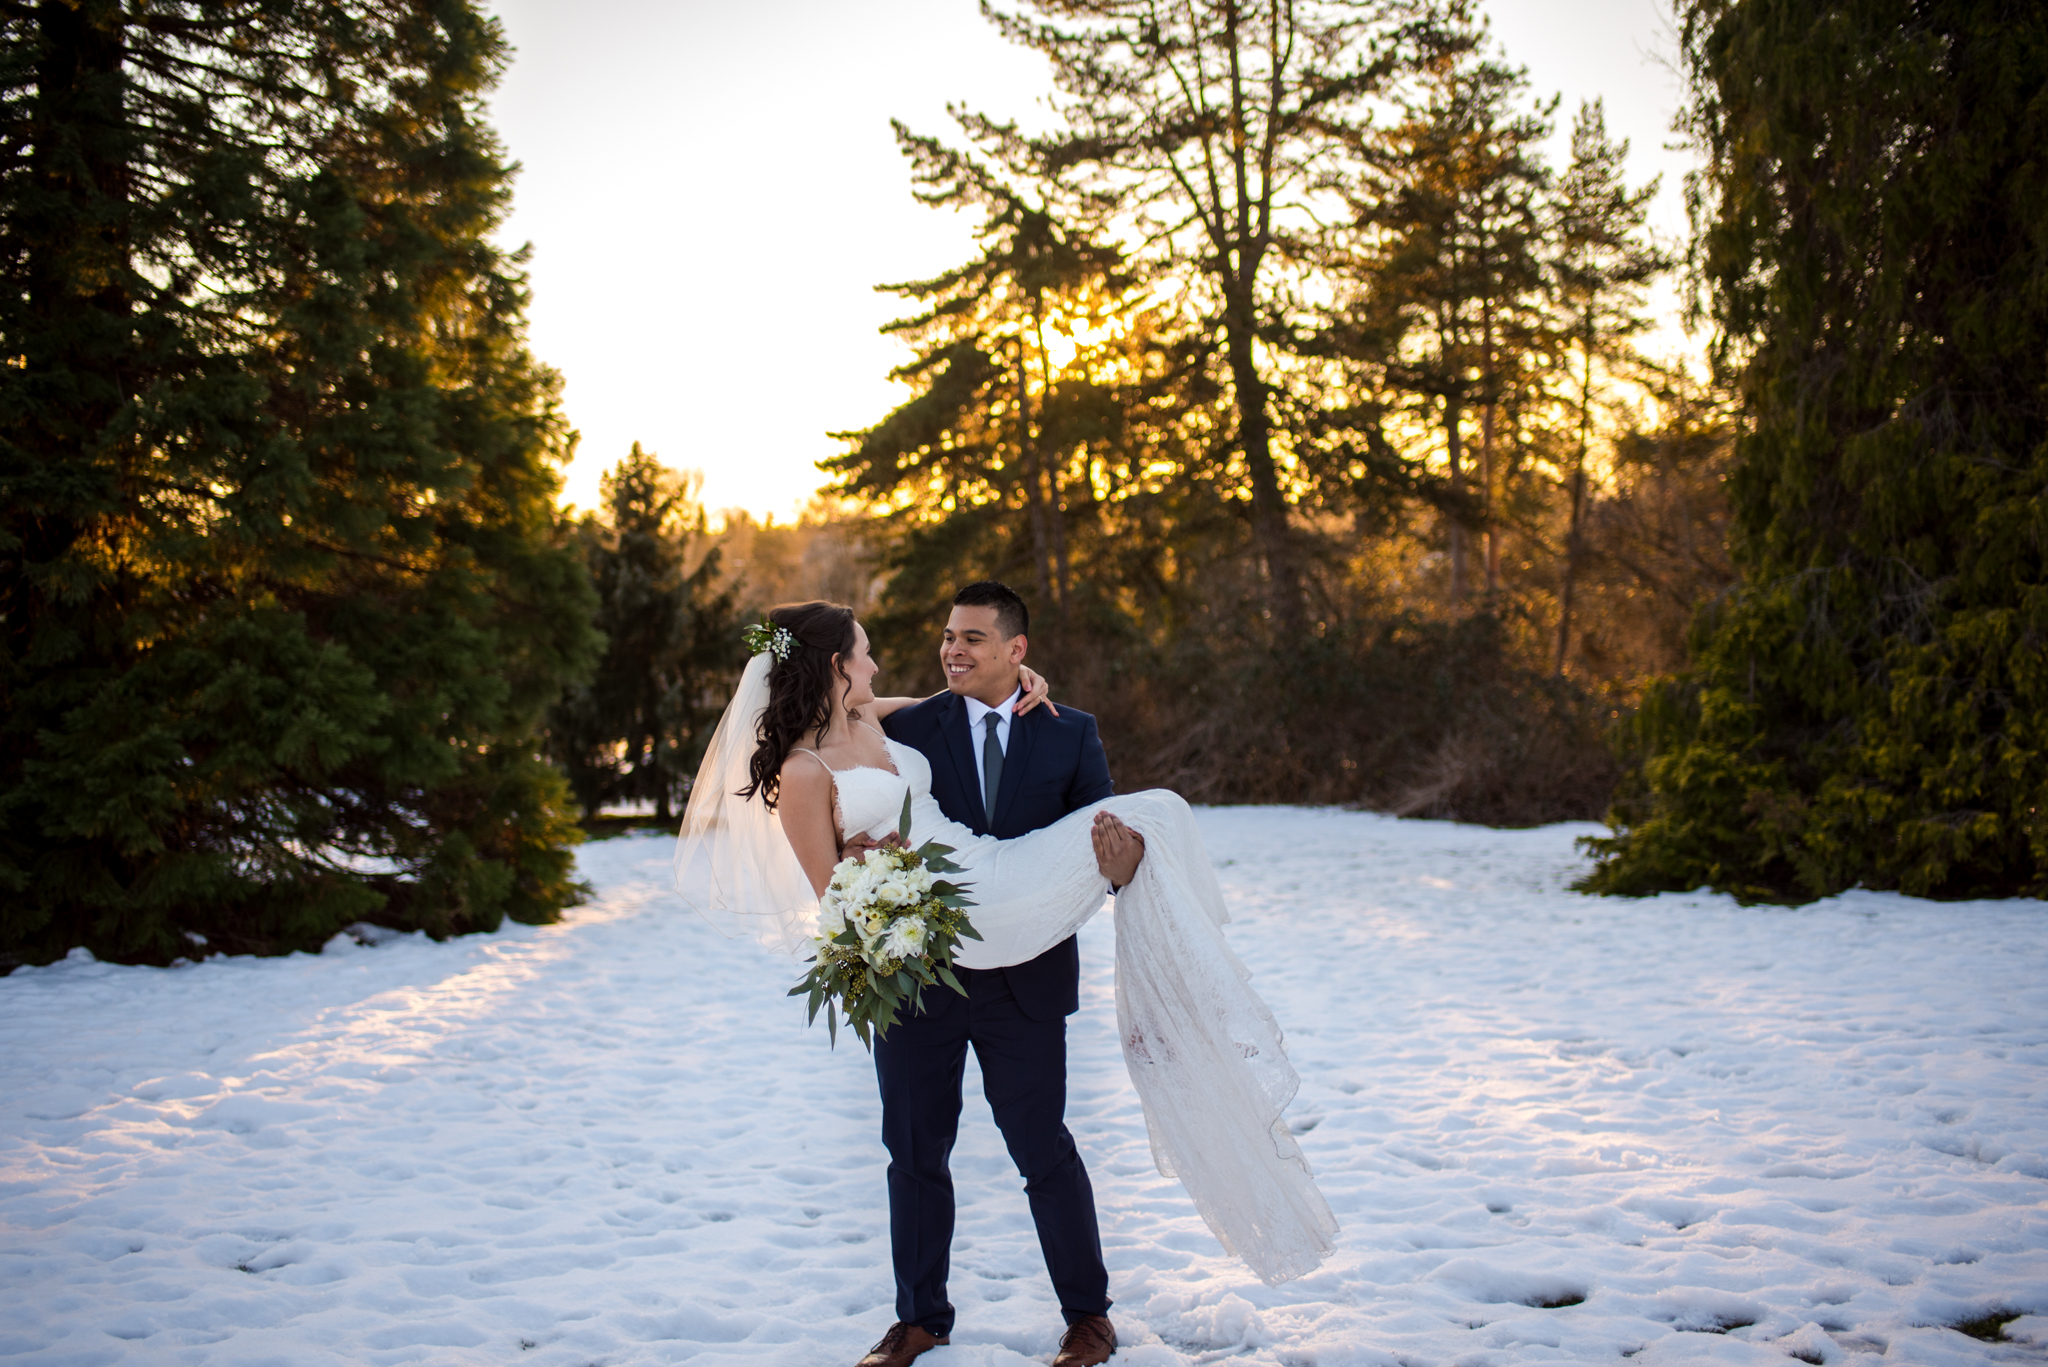 Bride and Groom in Snowy Park in Vancouver BC